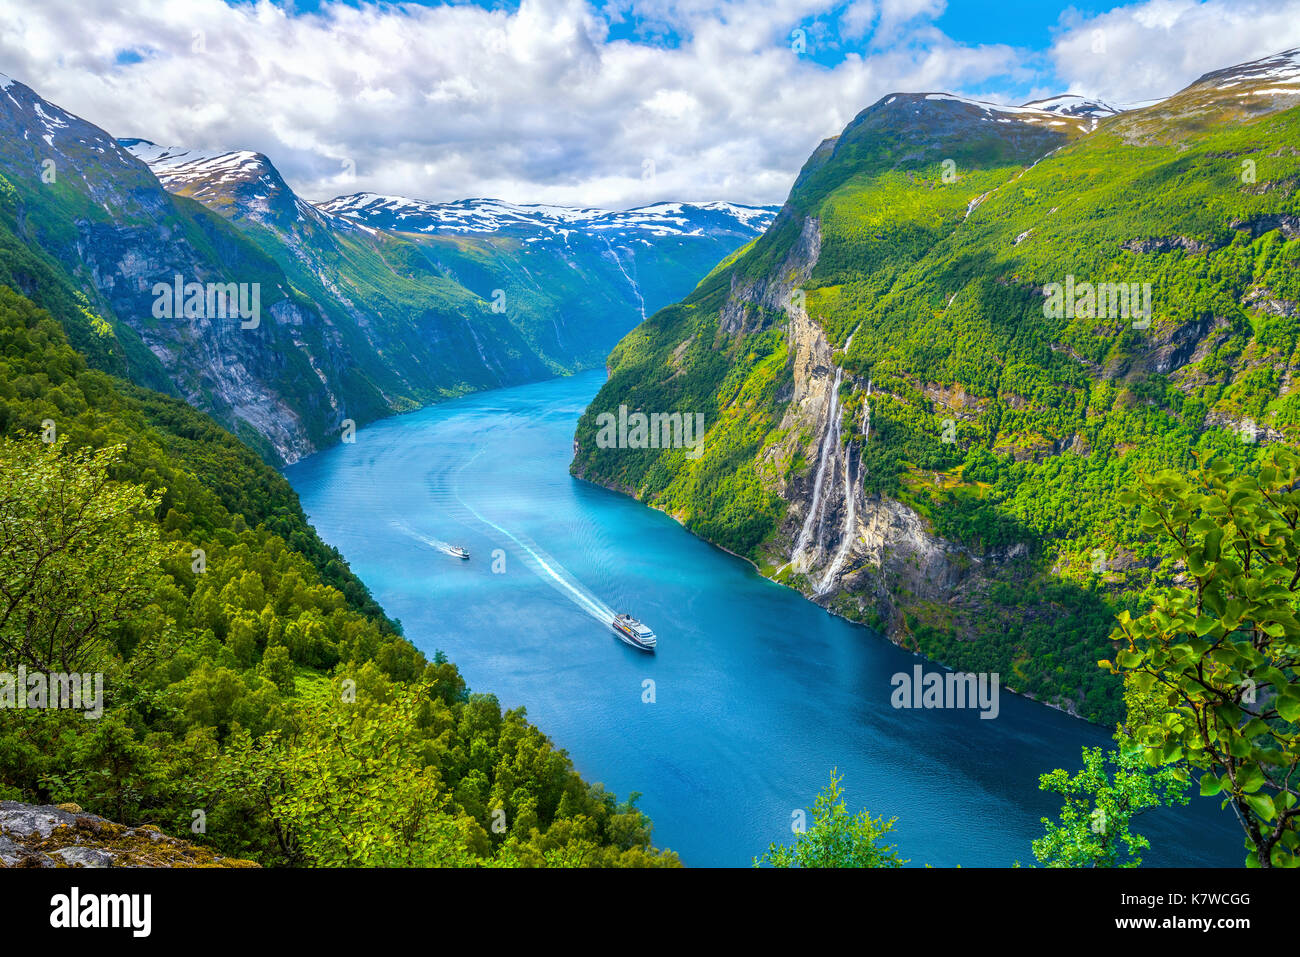 cruise ship of Hurtigruten and the ferry passing Seven Sisters waterfall in the Geirangerfjorden, view from above, mountain panorama, Norway - Stock Image